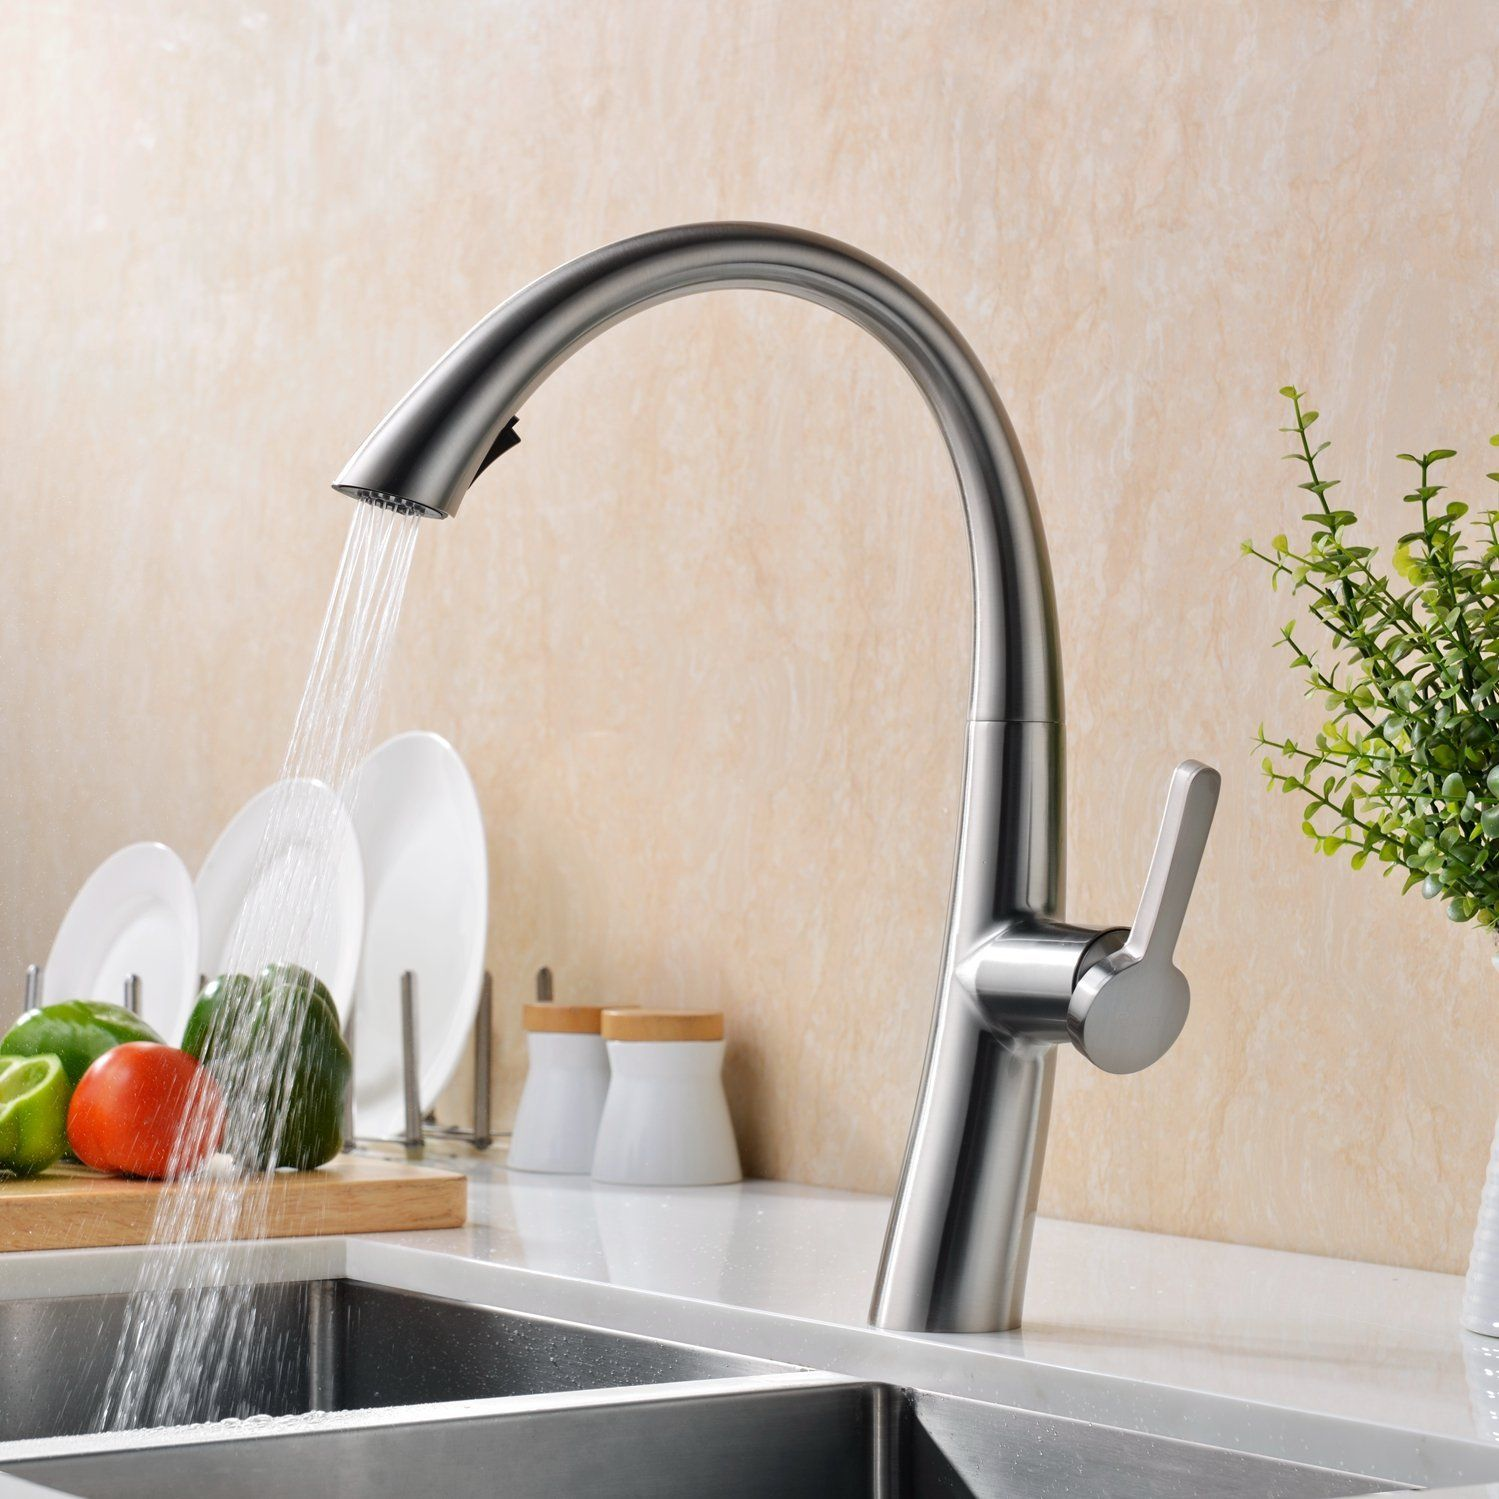 Gicasa Modern Stainless Steel Swivel Spout Monobloc Pull Out Extraordinary Kitchen Taps 2018